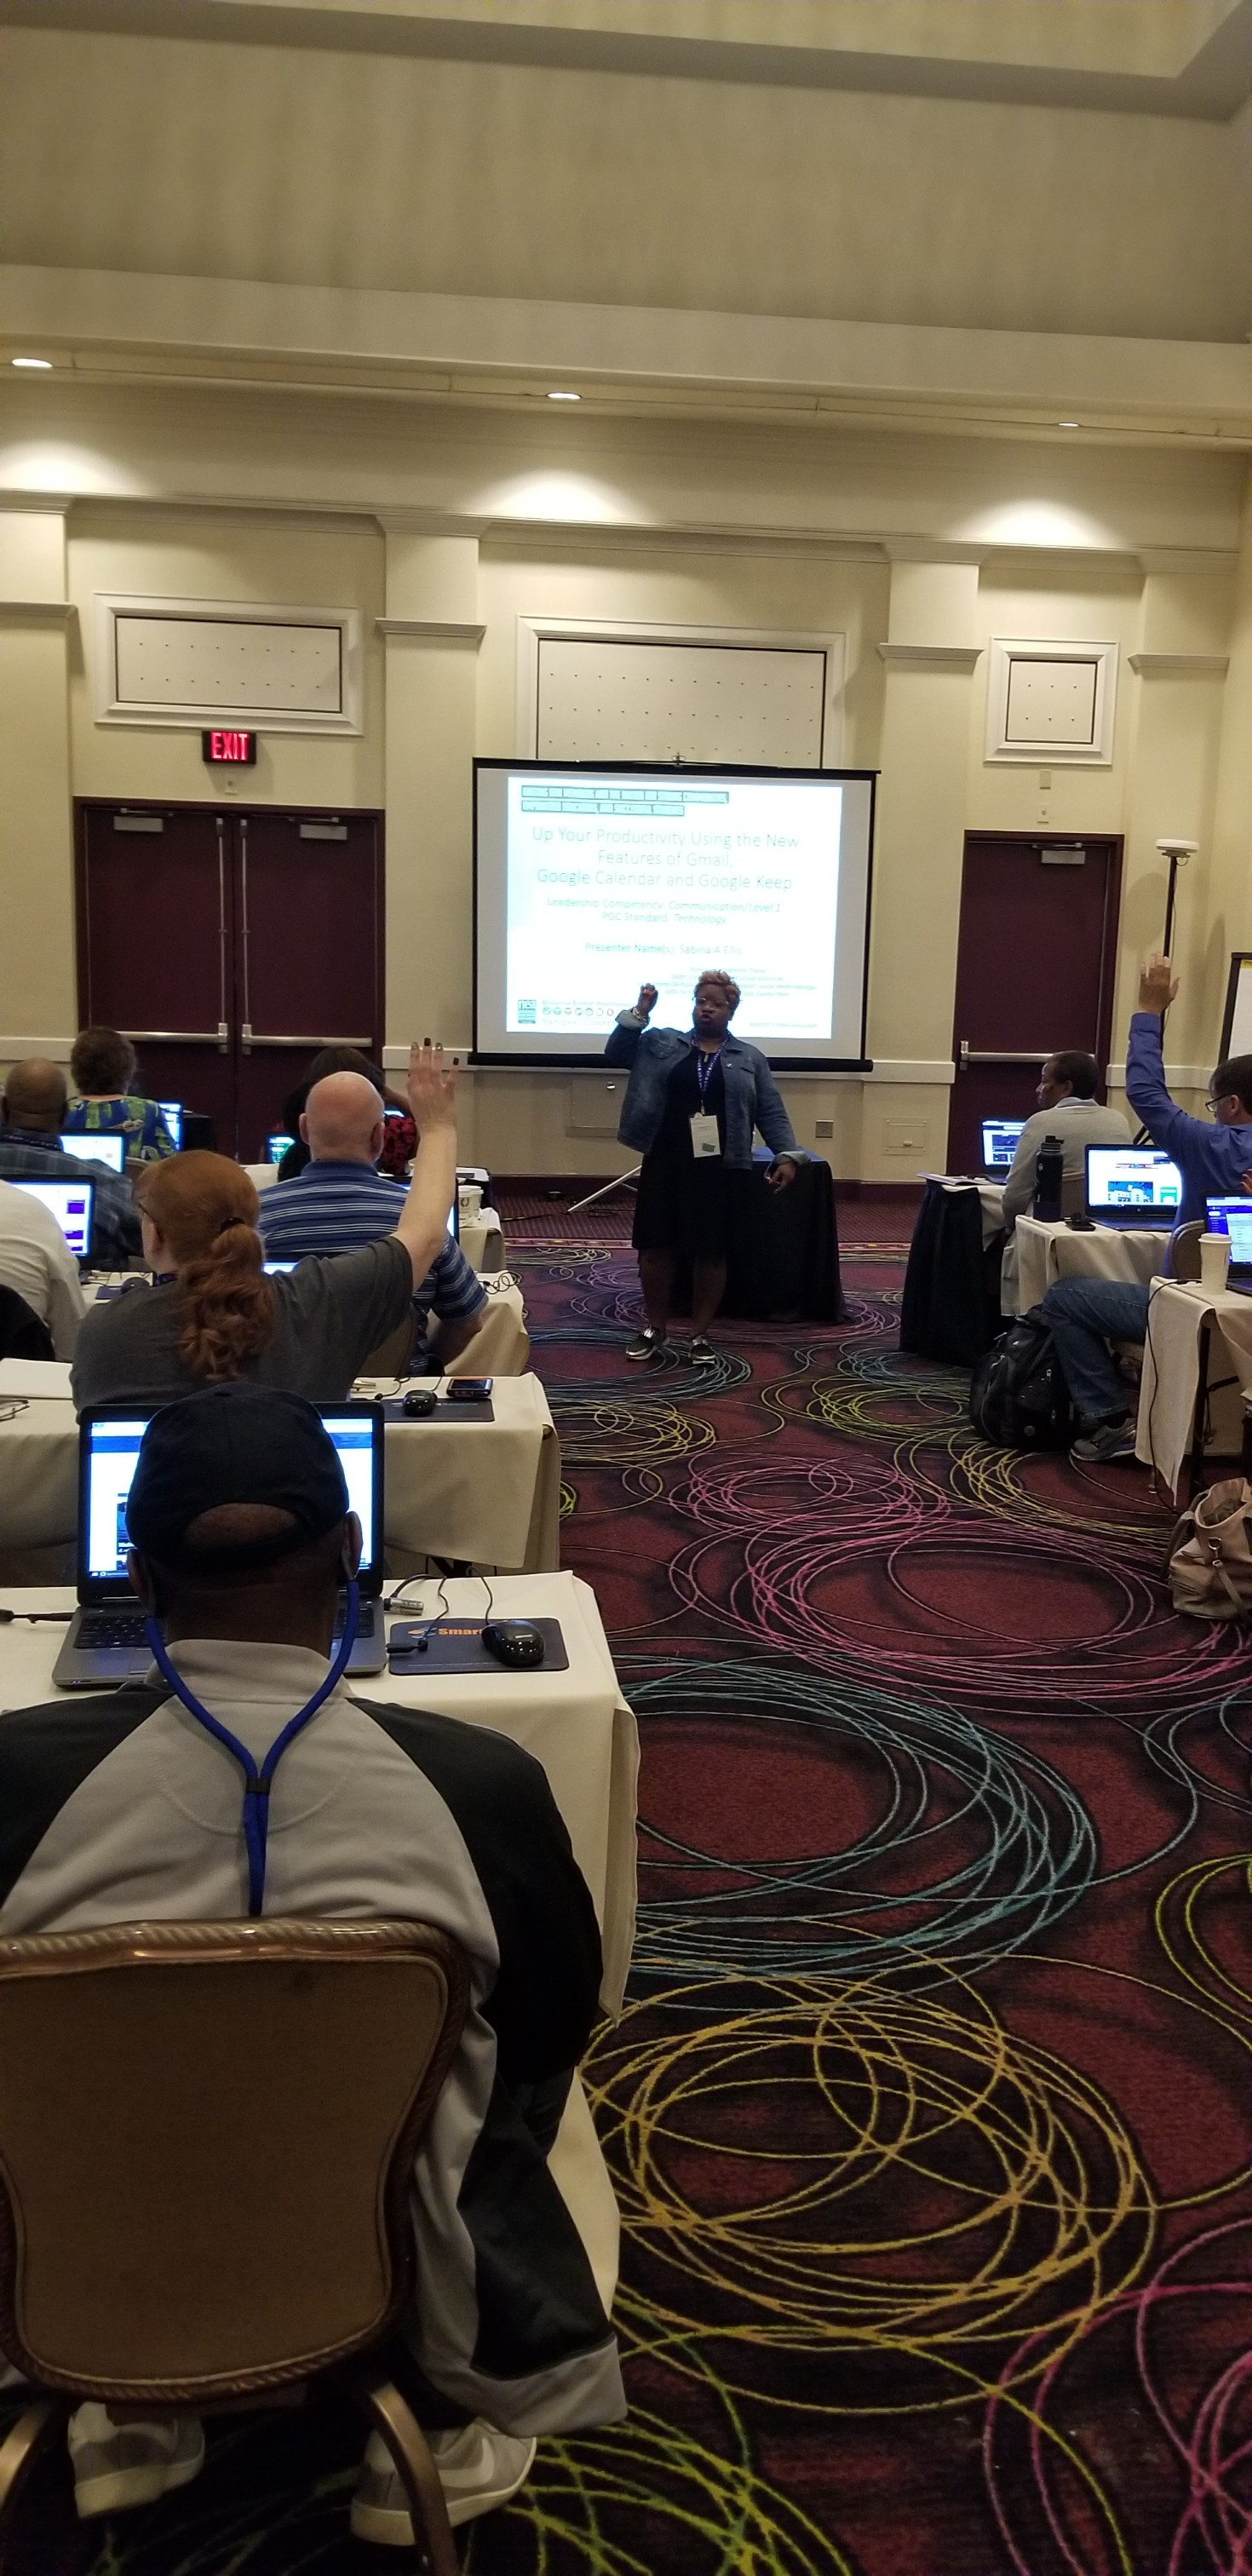 Our-PR-Sabina-A-Ellis-held-her-Workshop-session-on-Google-Features-here-at-the-NEA-ESP-Conference.-ESP2019-WeLoveESPs-1